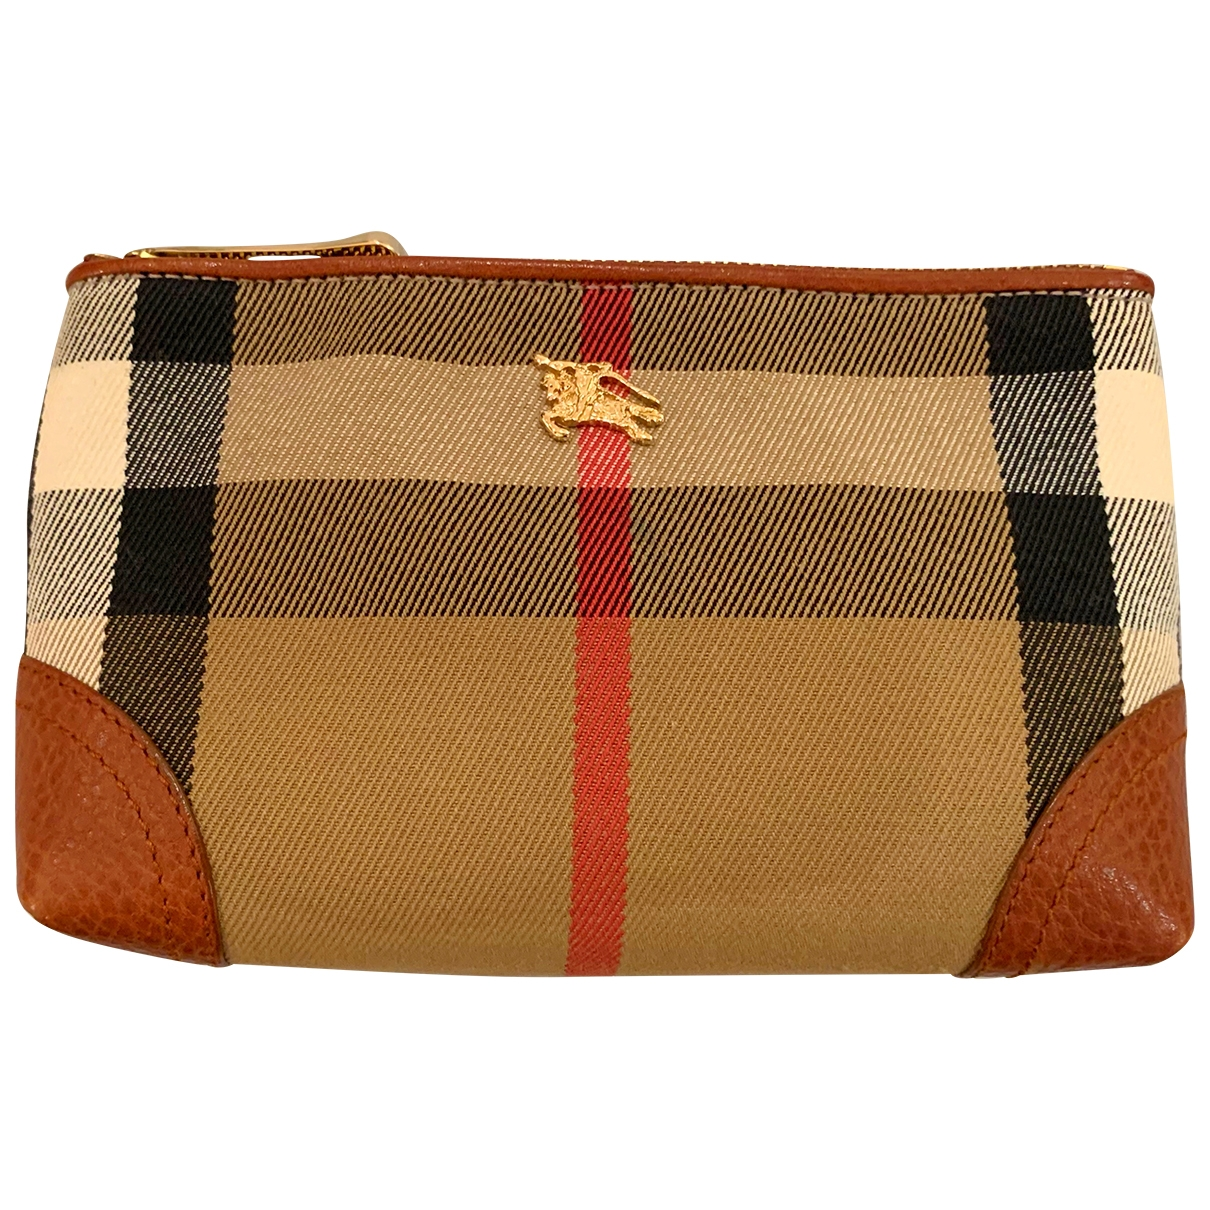 Burberry \N Clutch in  Beige Leinen